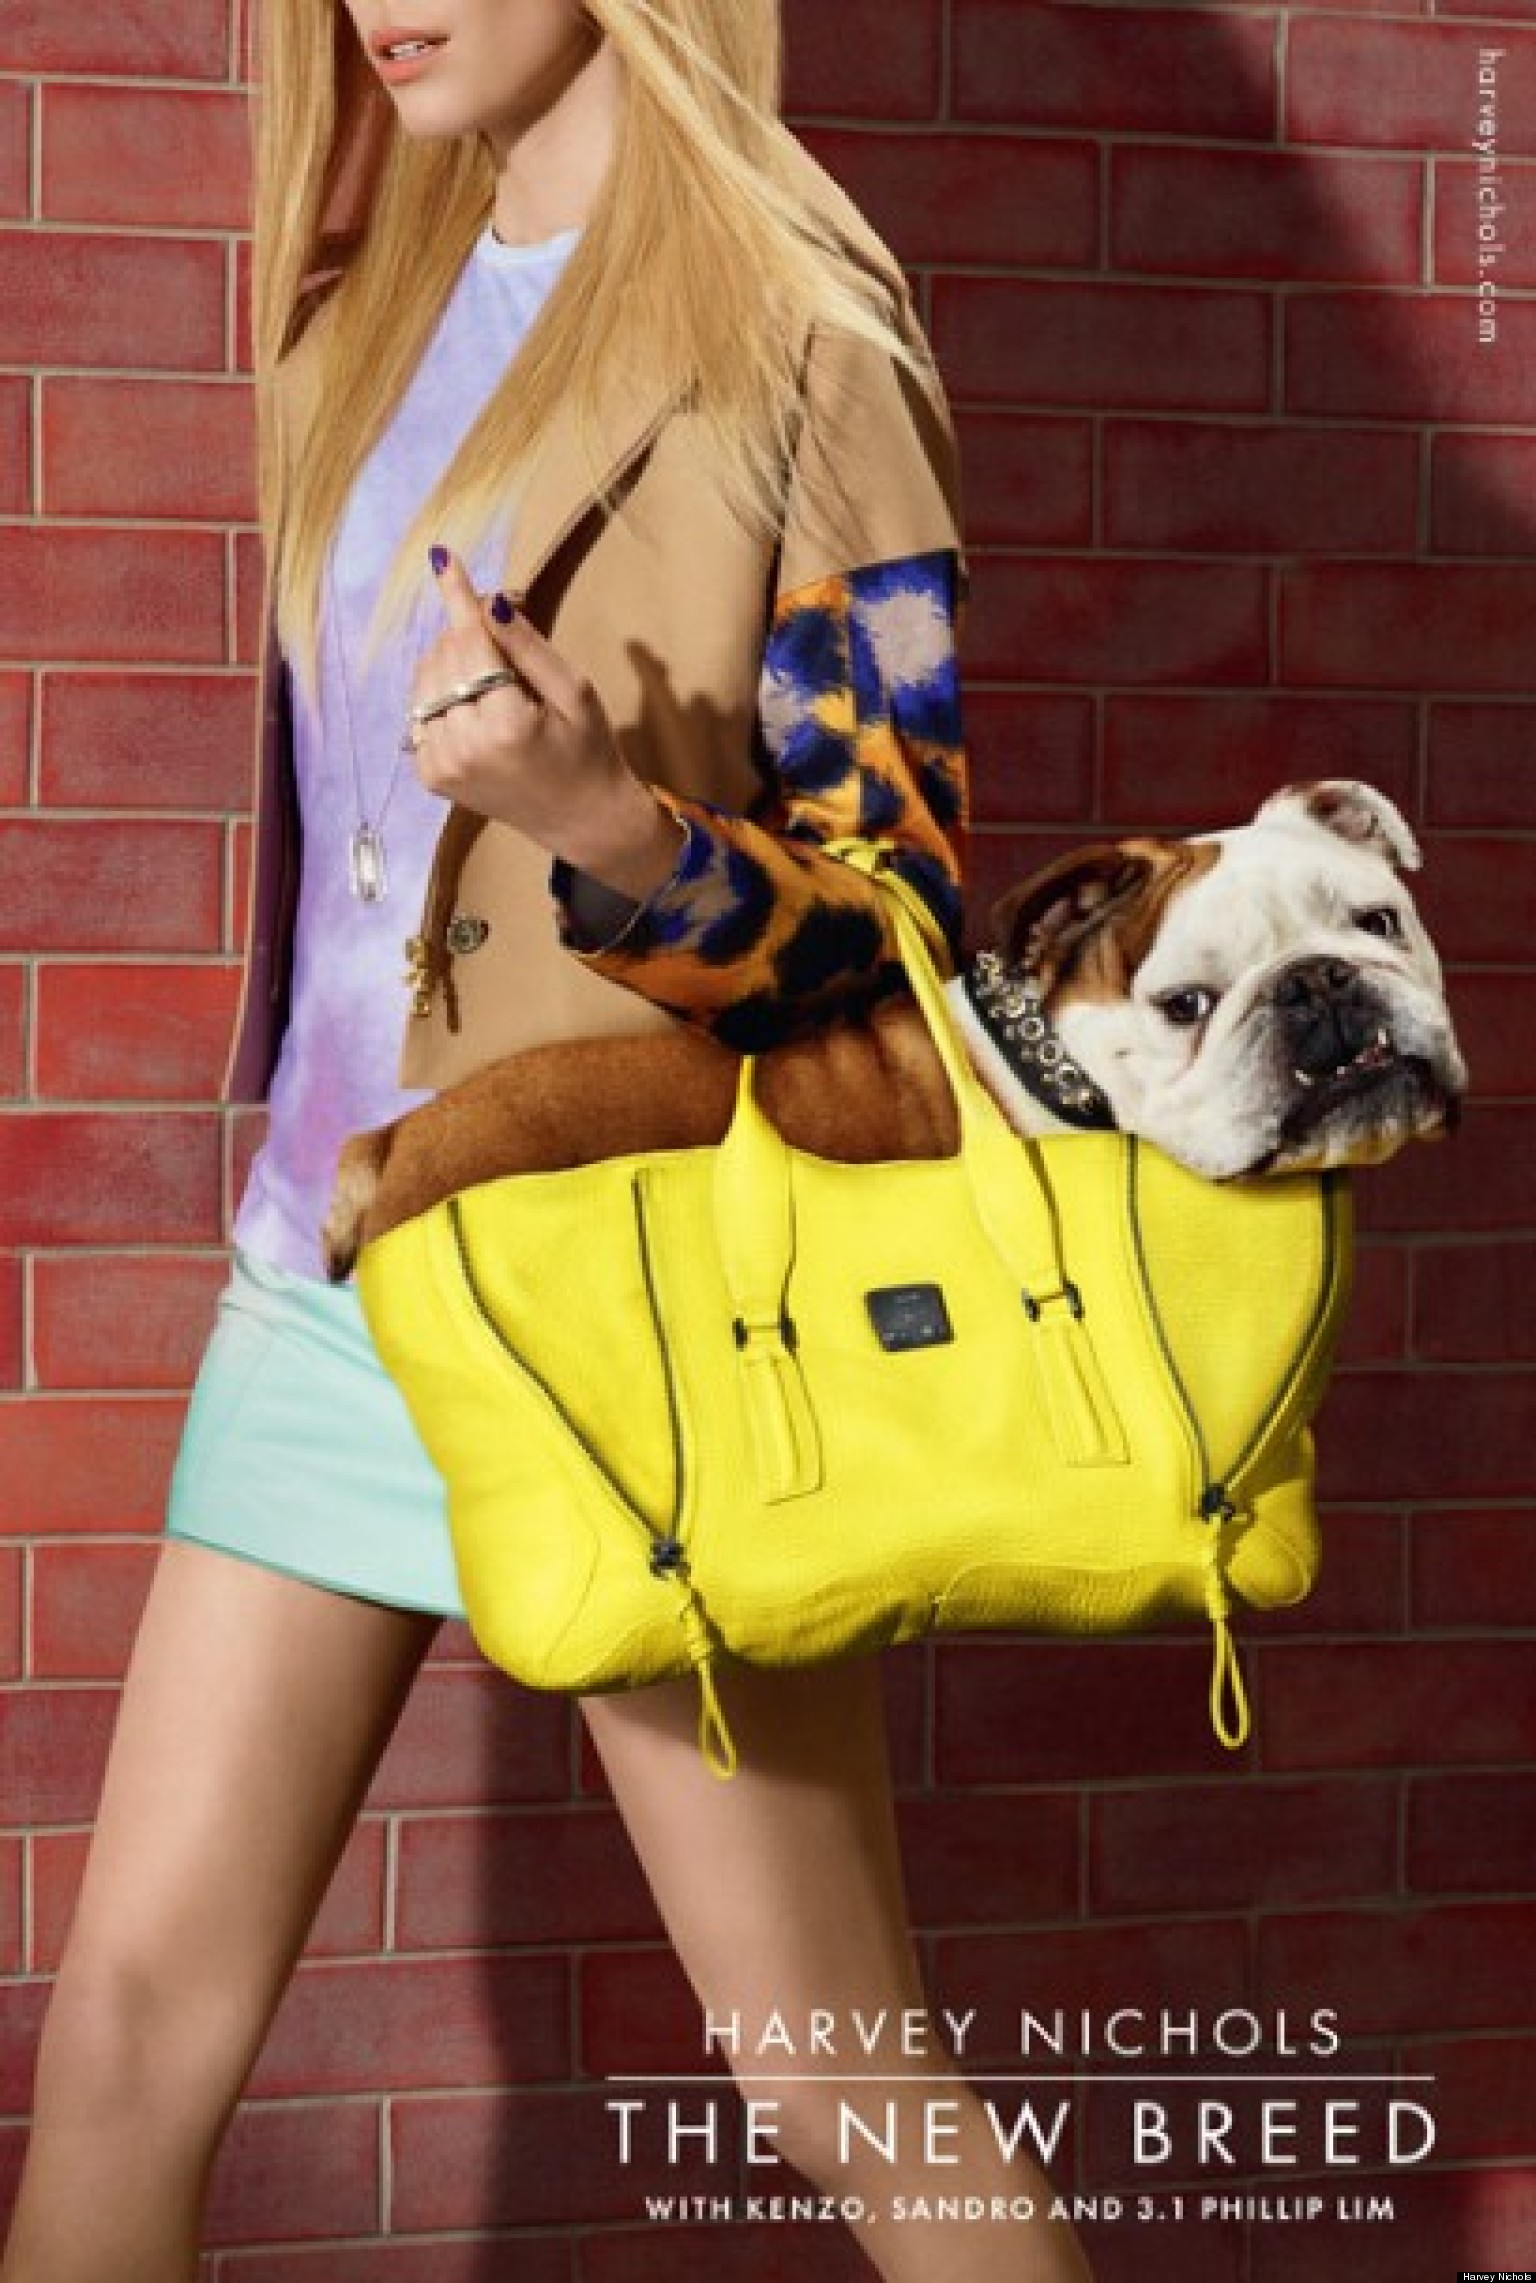 Harvey Nichols Sued By Barrister Marianne Perkins For